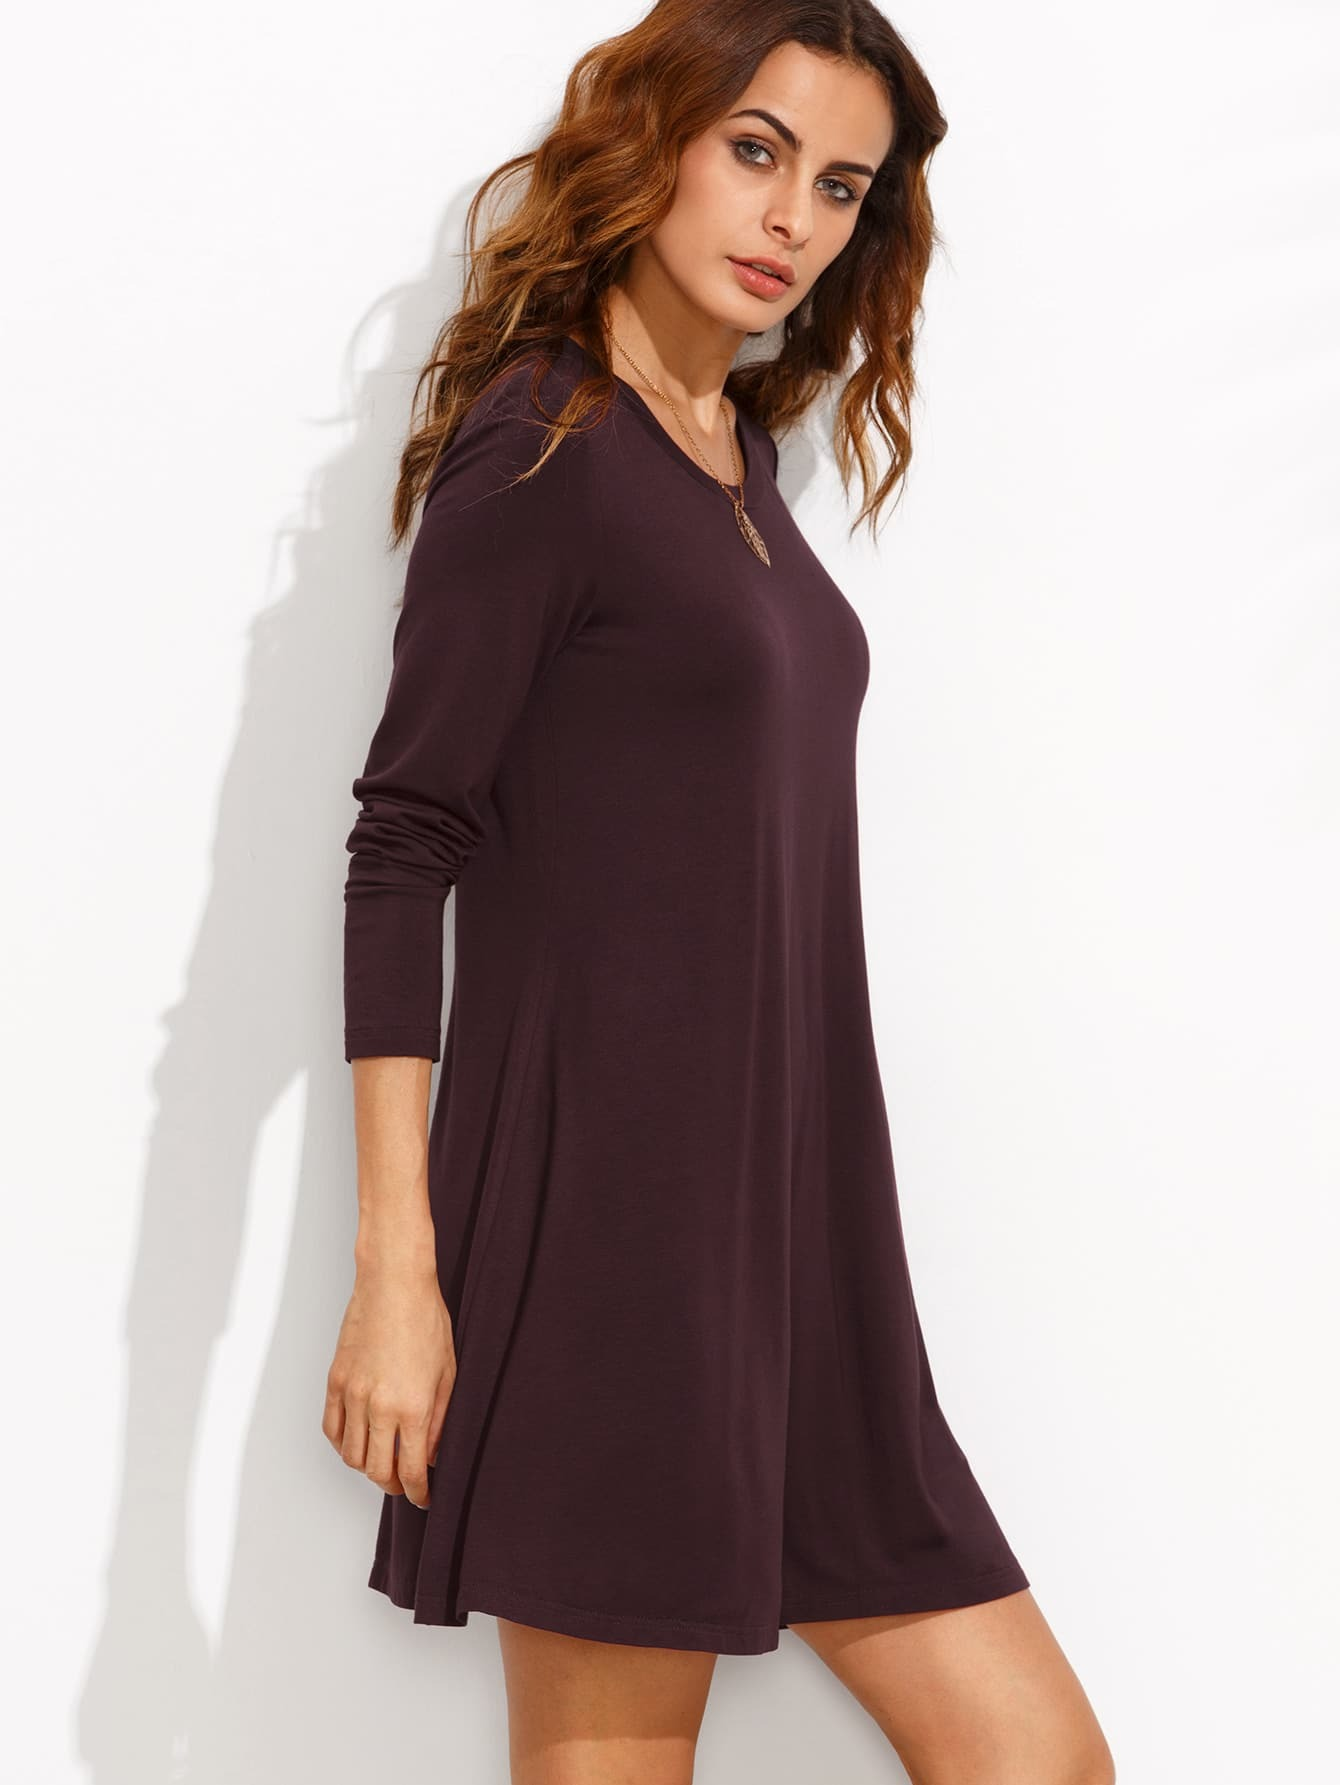 Burgundy Long Sleeve T-shirt Dress -SheIn(Sheinside)